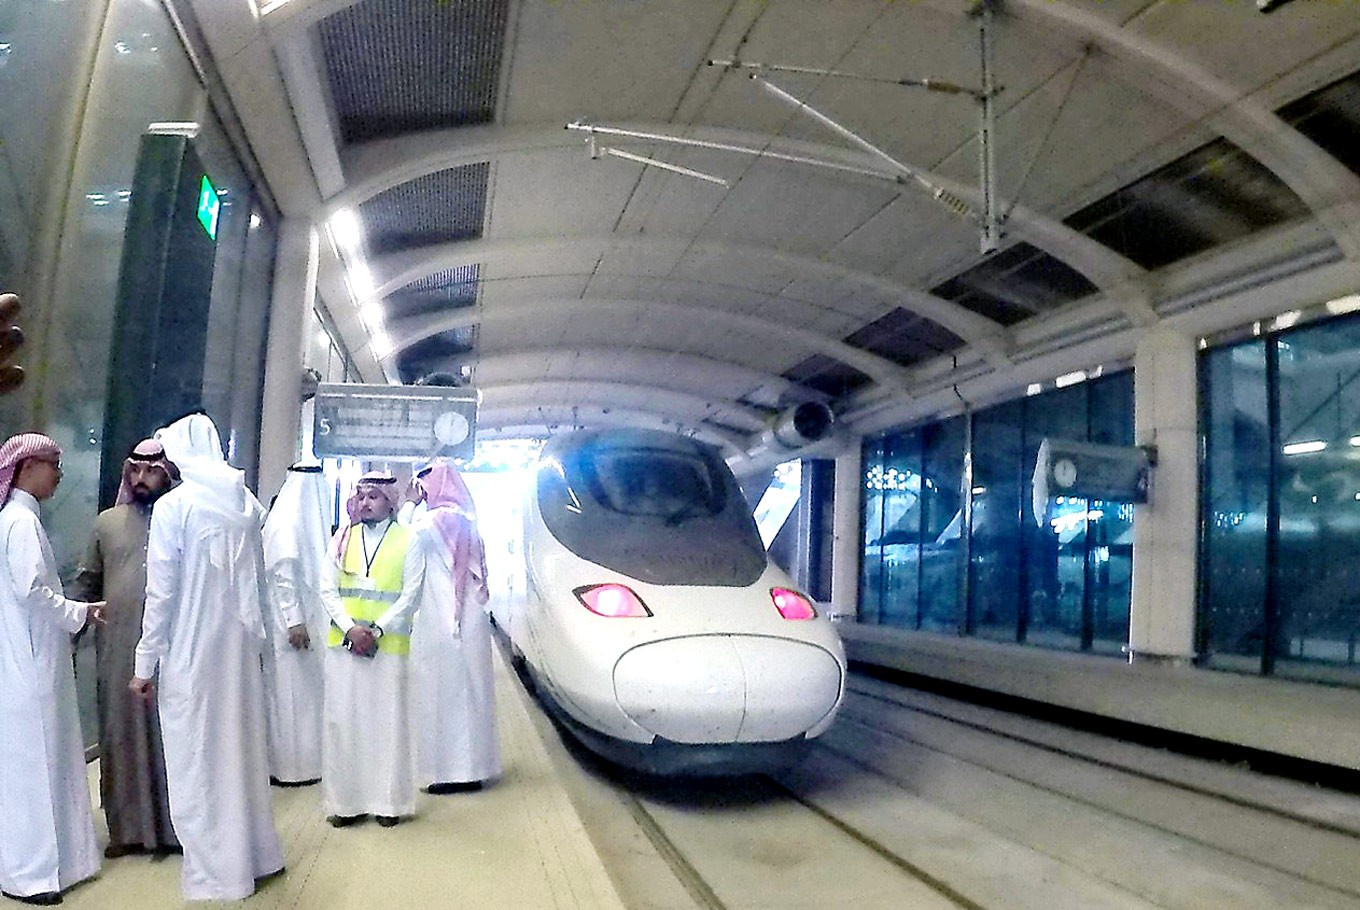 All aboard: Saudi Arabian officials inspect the bullet train at King Abdullah Economic City Station, one of five stops of the Haramain high-speed rail service between Mecca and Medina.